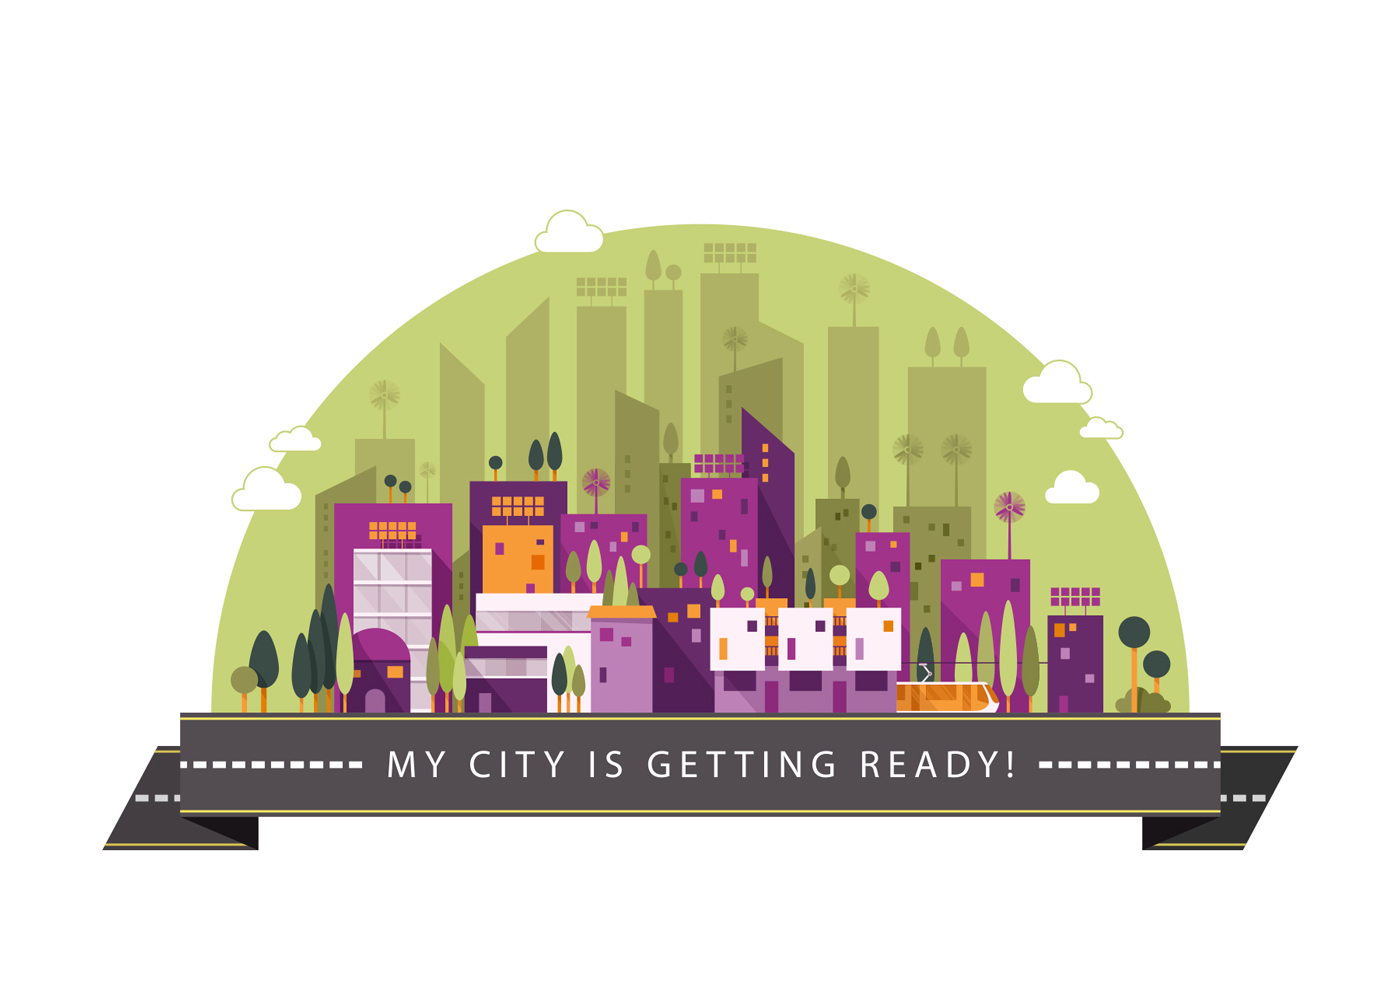 Making Cities Resilient - Resilient City Illustration